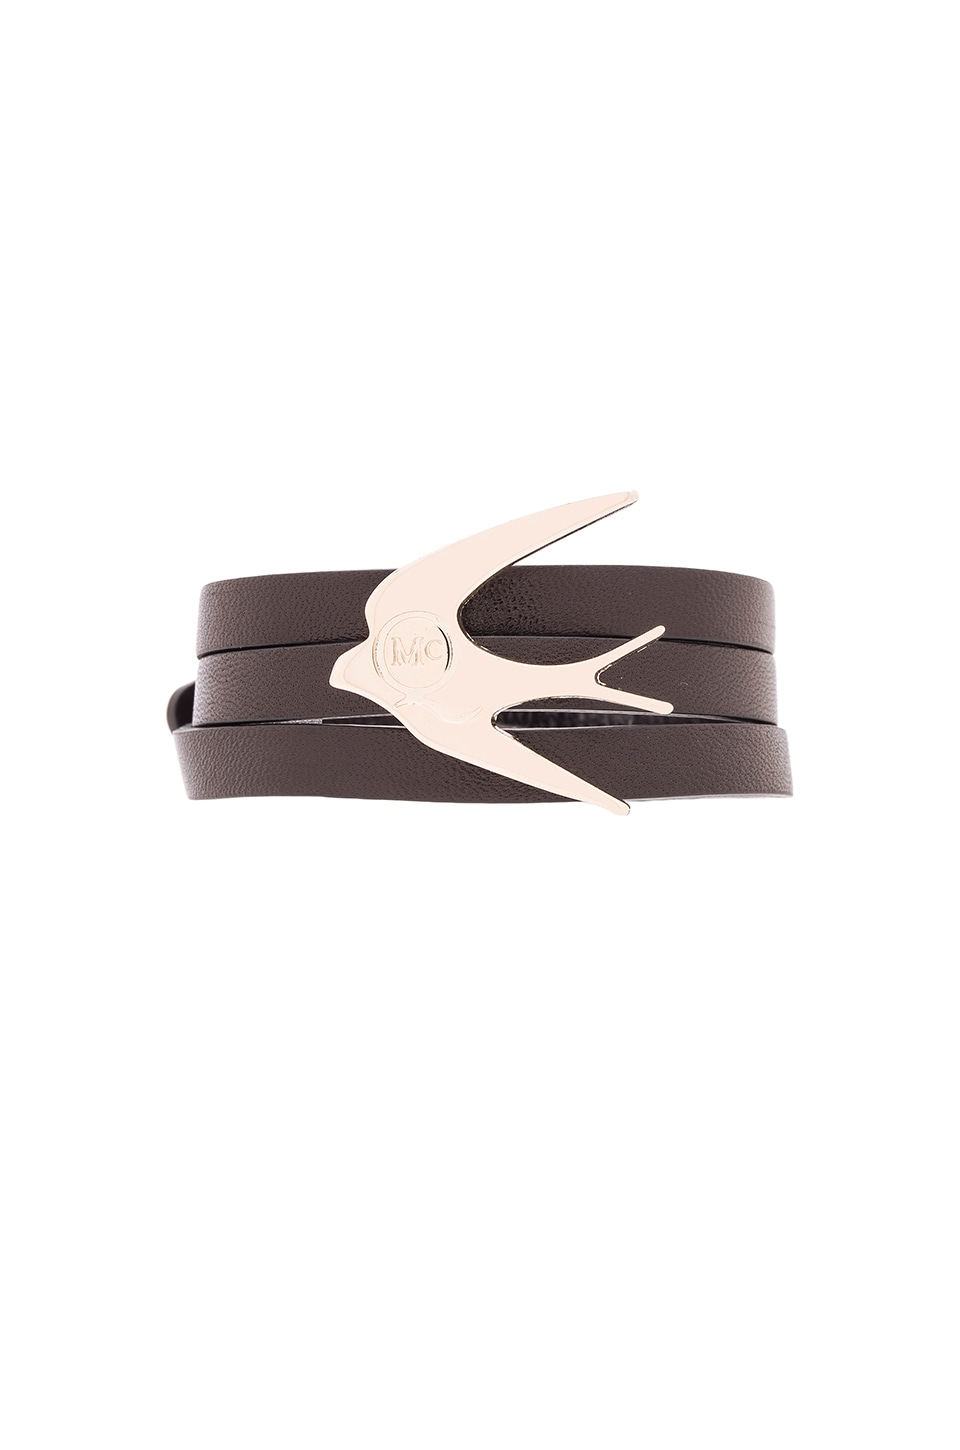 McQ Alexander McQueen Swallow Triple Wrap Bracelet in Black